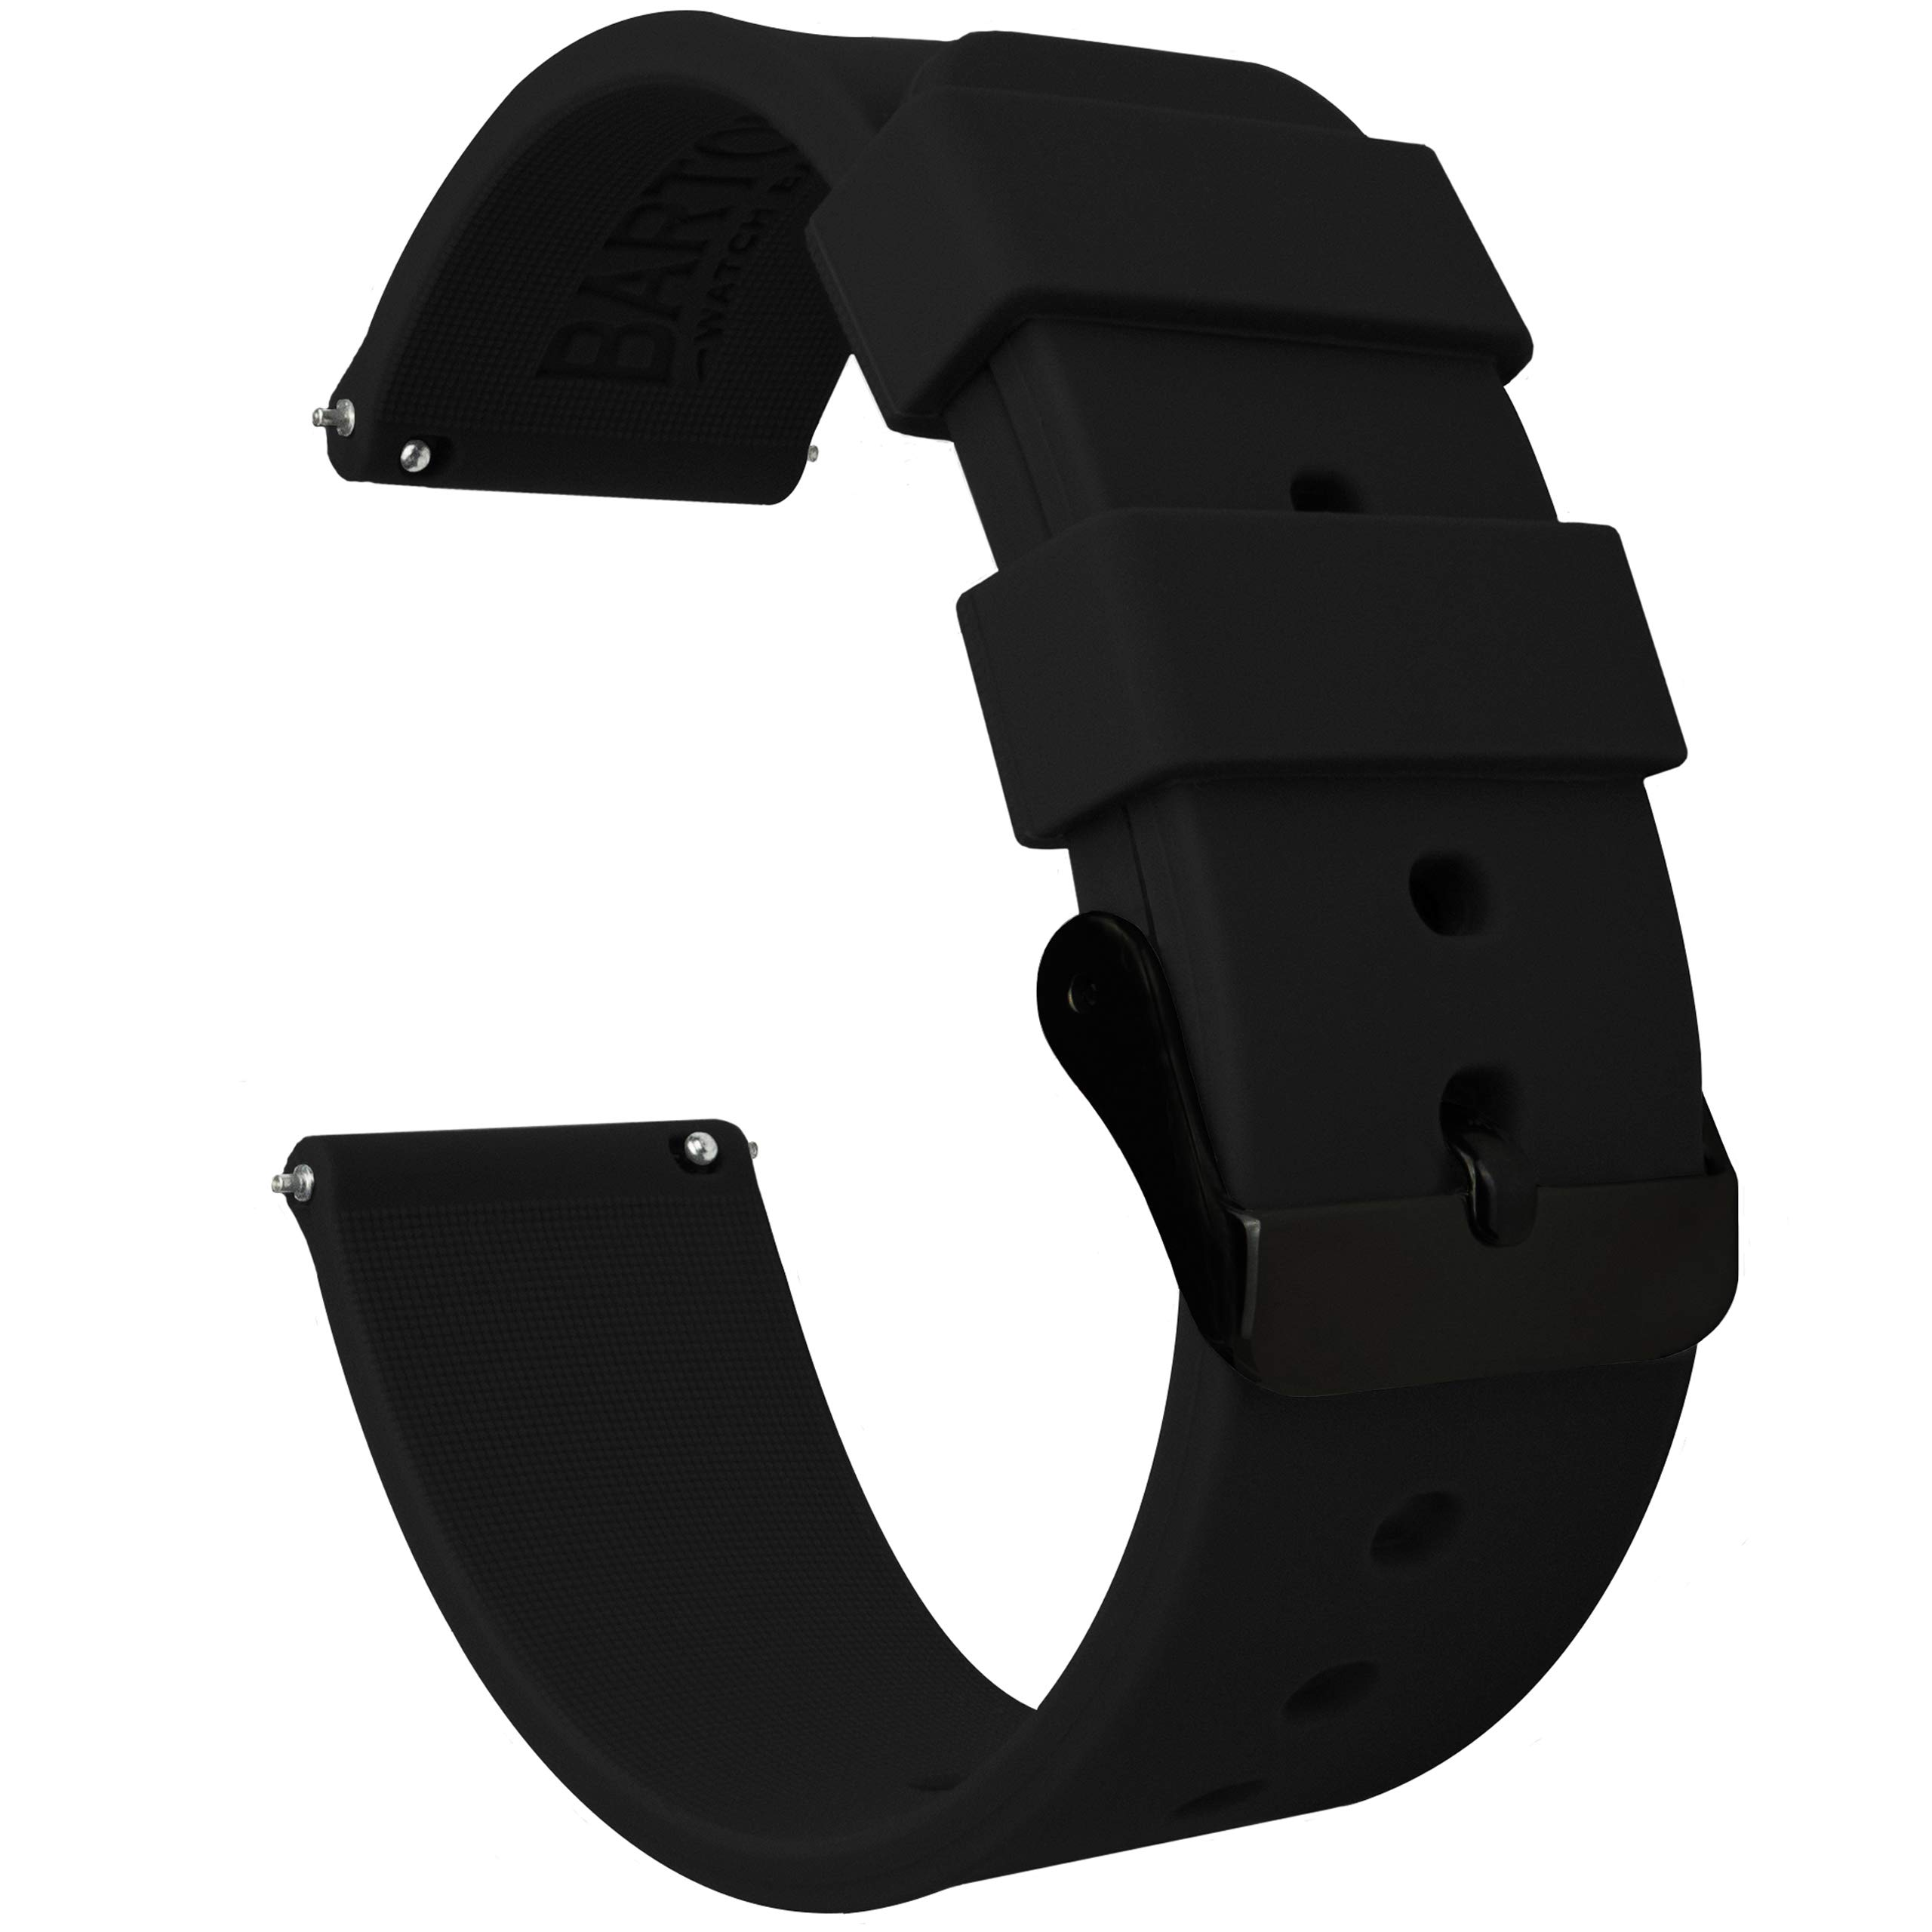 Barton Silicone - Black Buckle - 16mm, 18mm, 20mm, 22mm or 24mm - Black 22mm Watch Band Strap by Barton Watch Bands